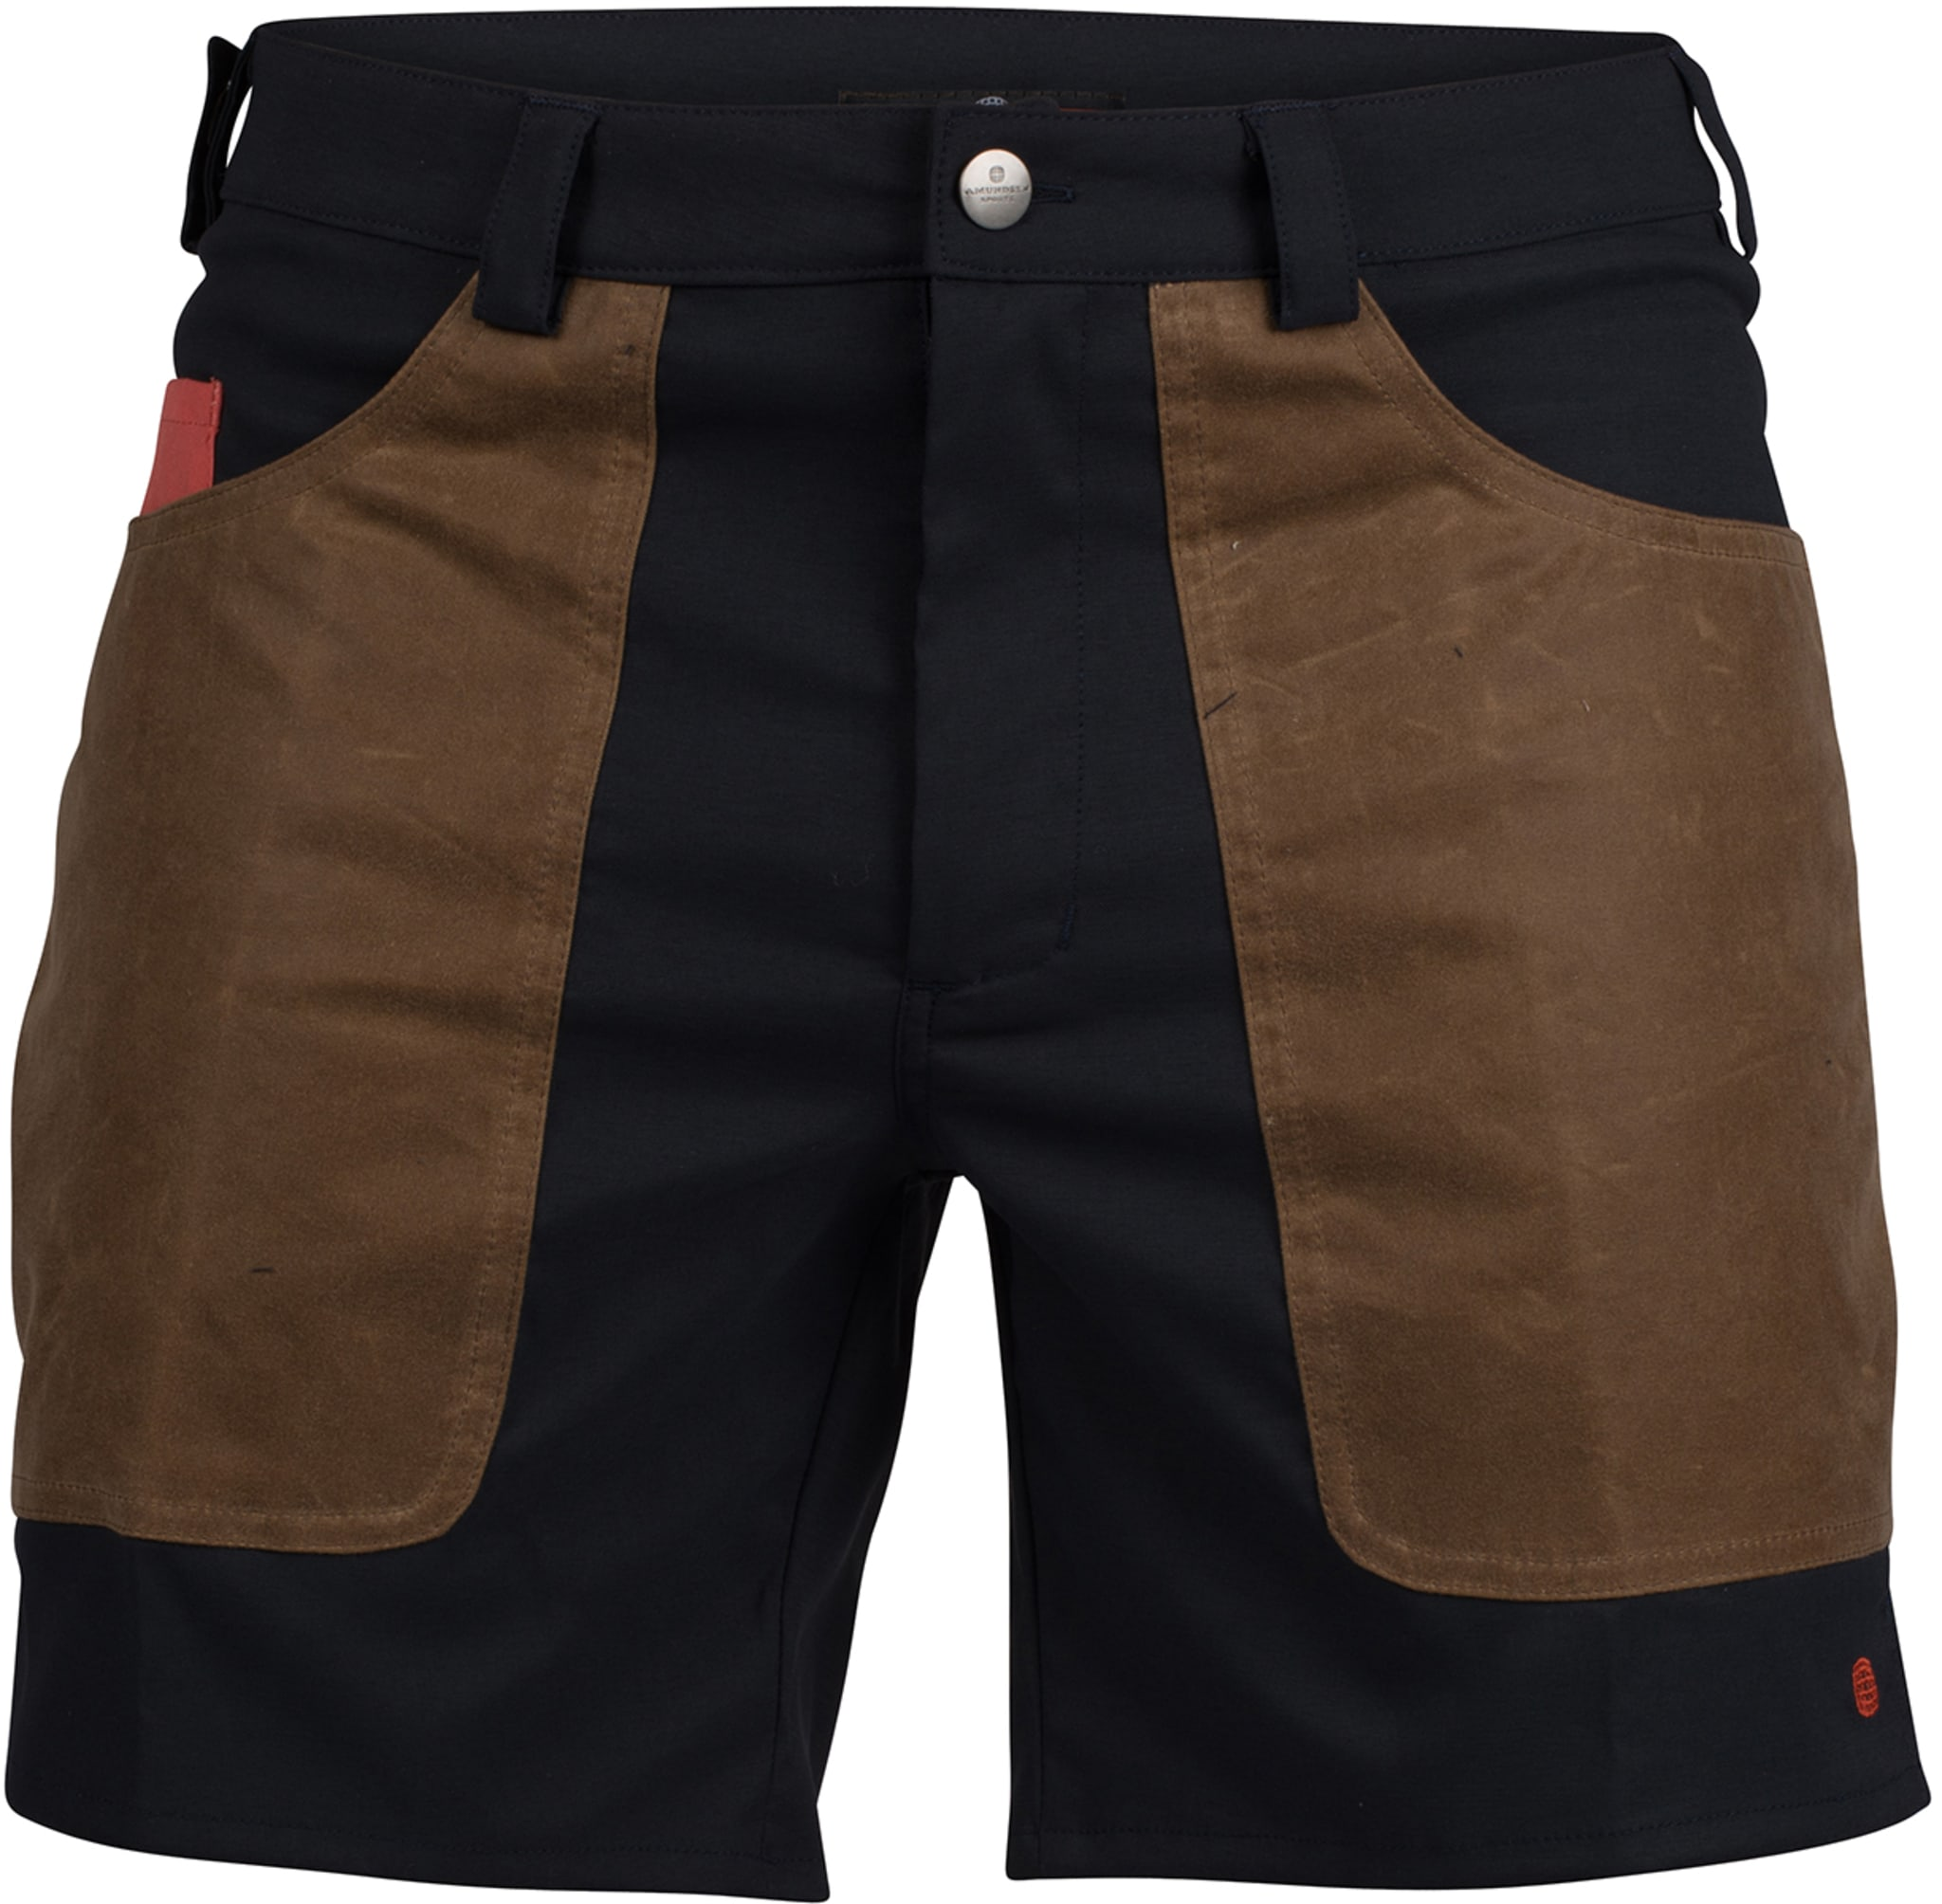 7incher Field Shorts Mens